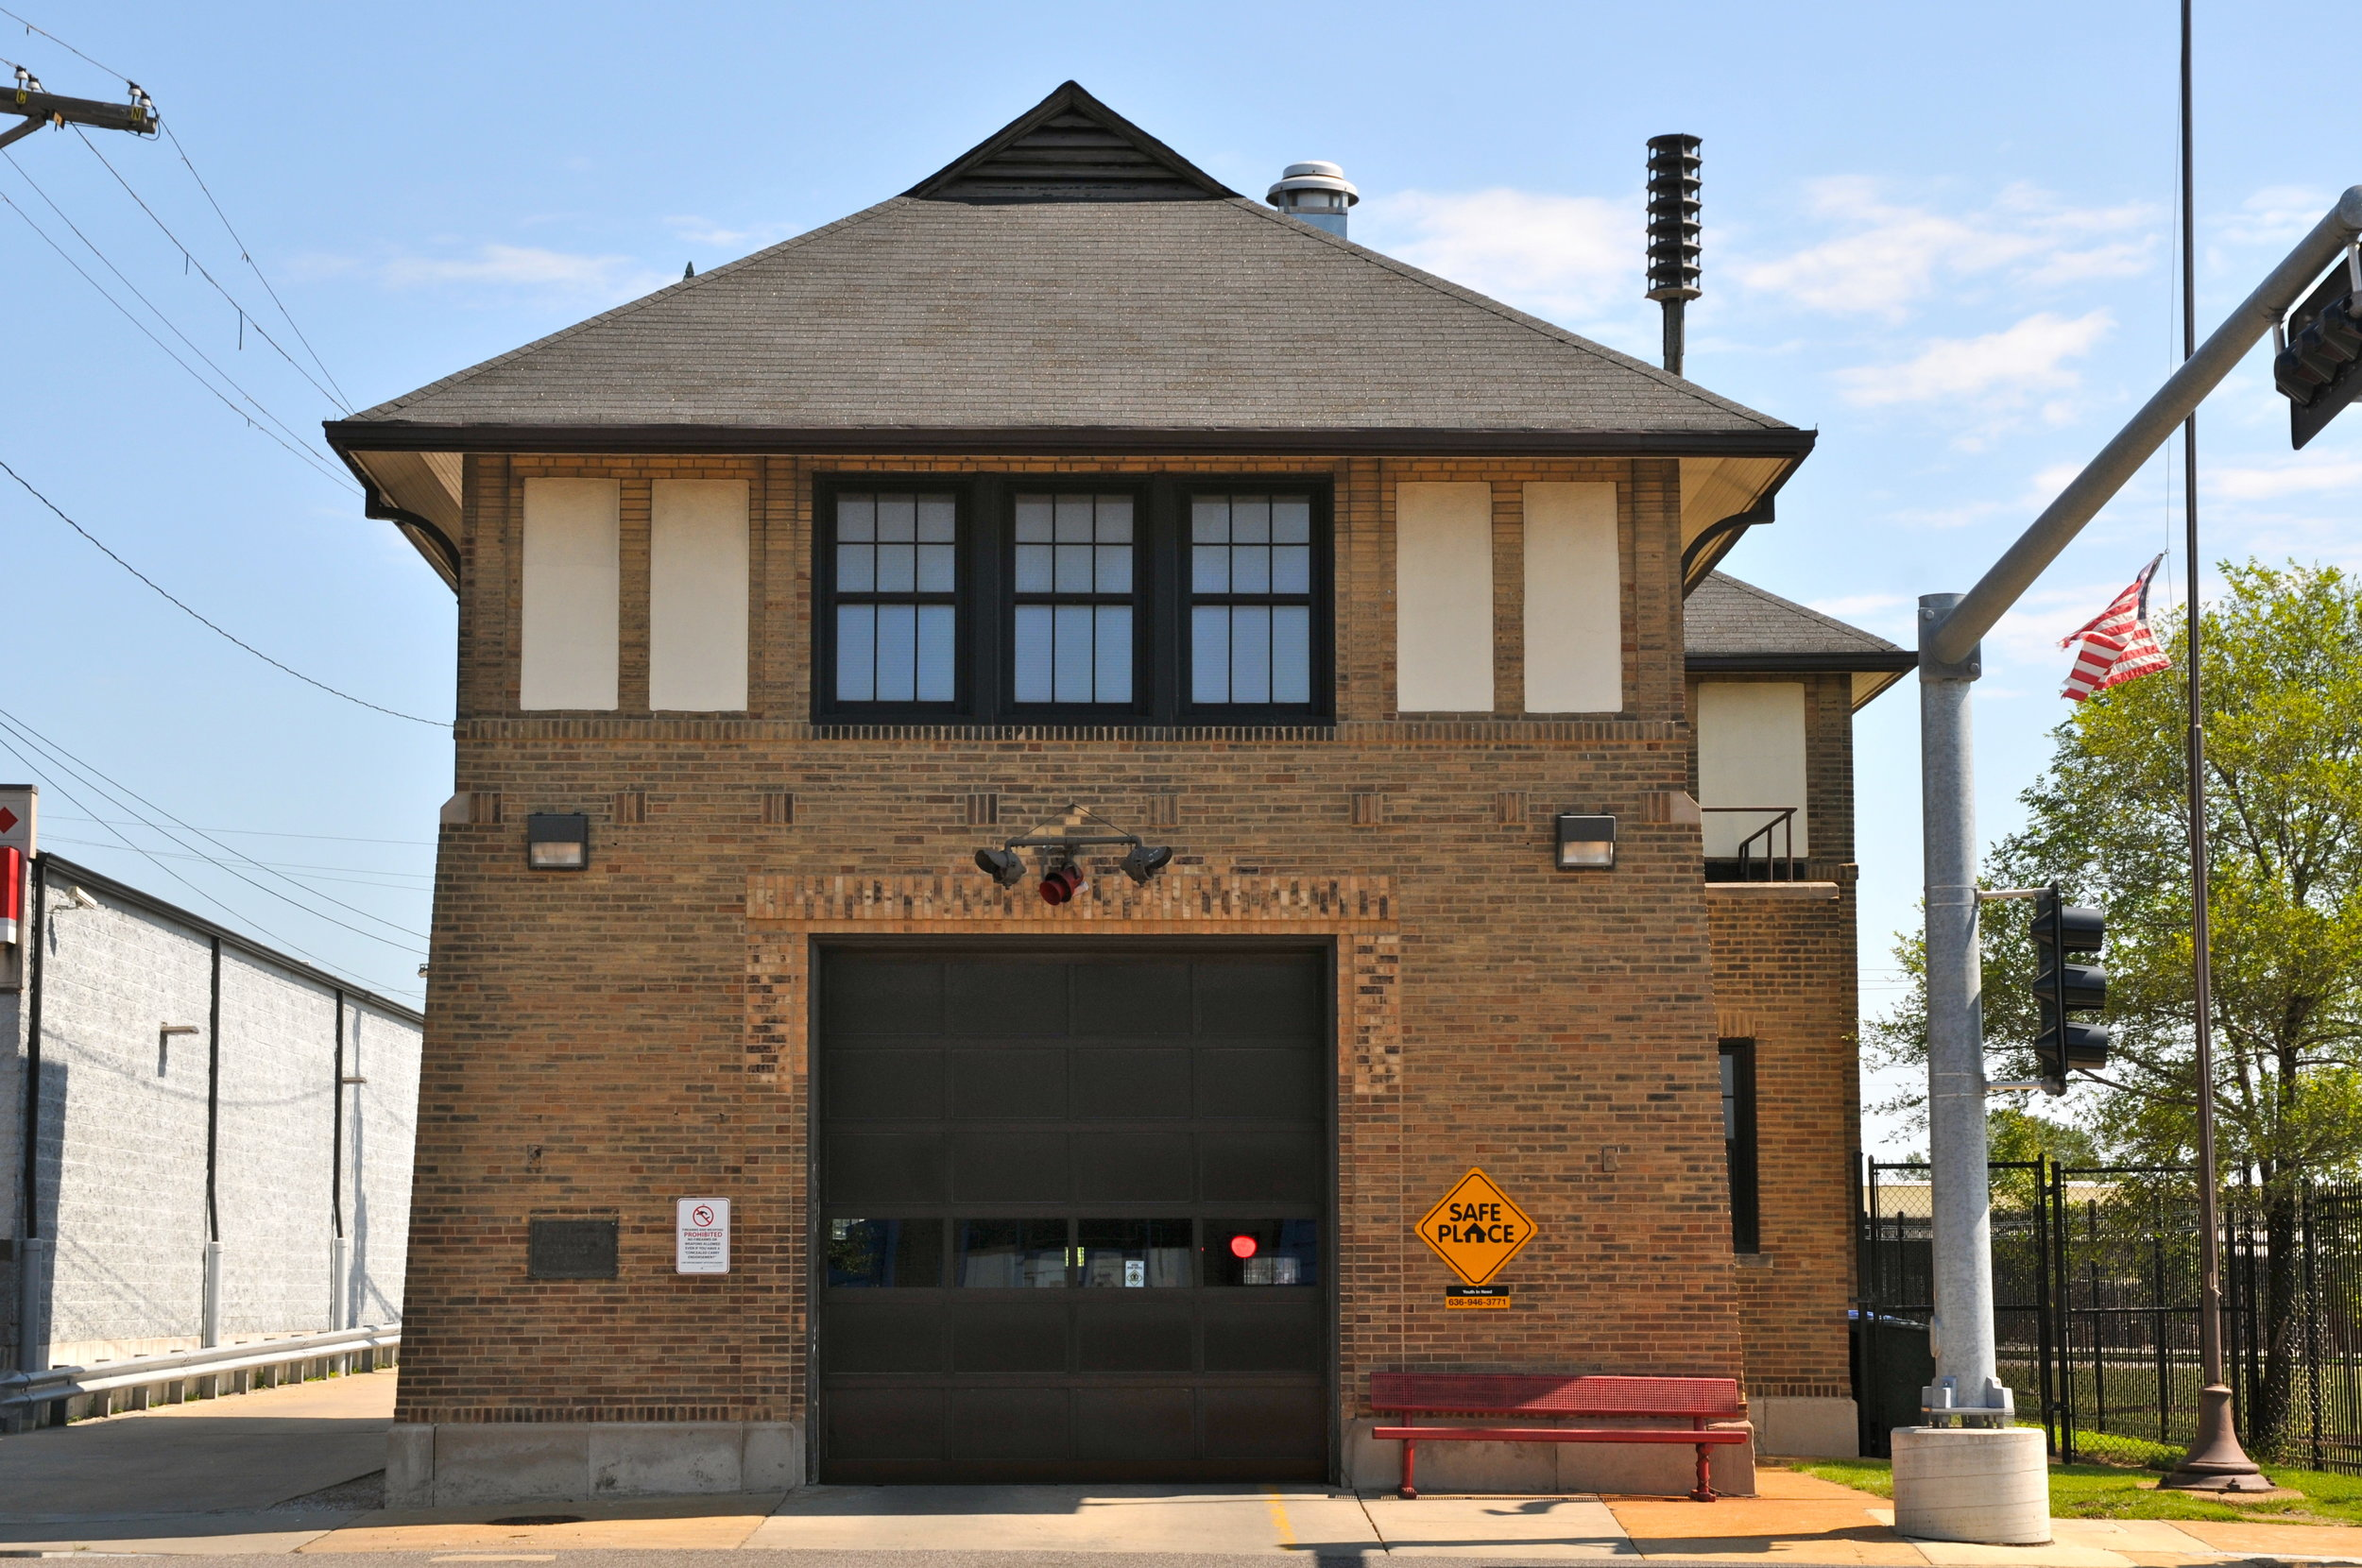 Firehouse #24 - Mark Twain/I-70 Industrial